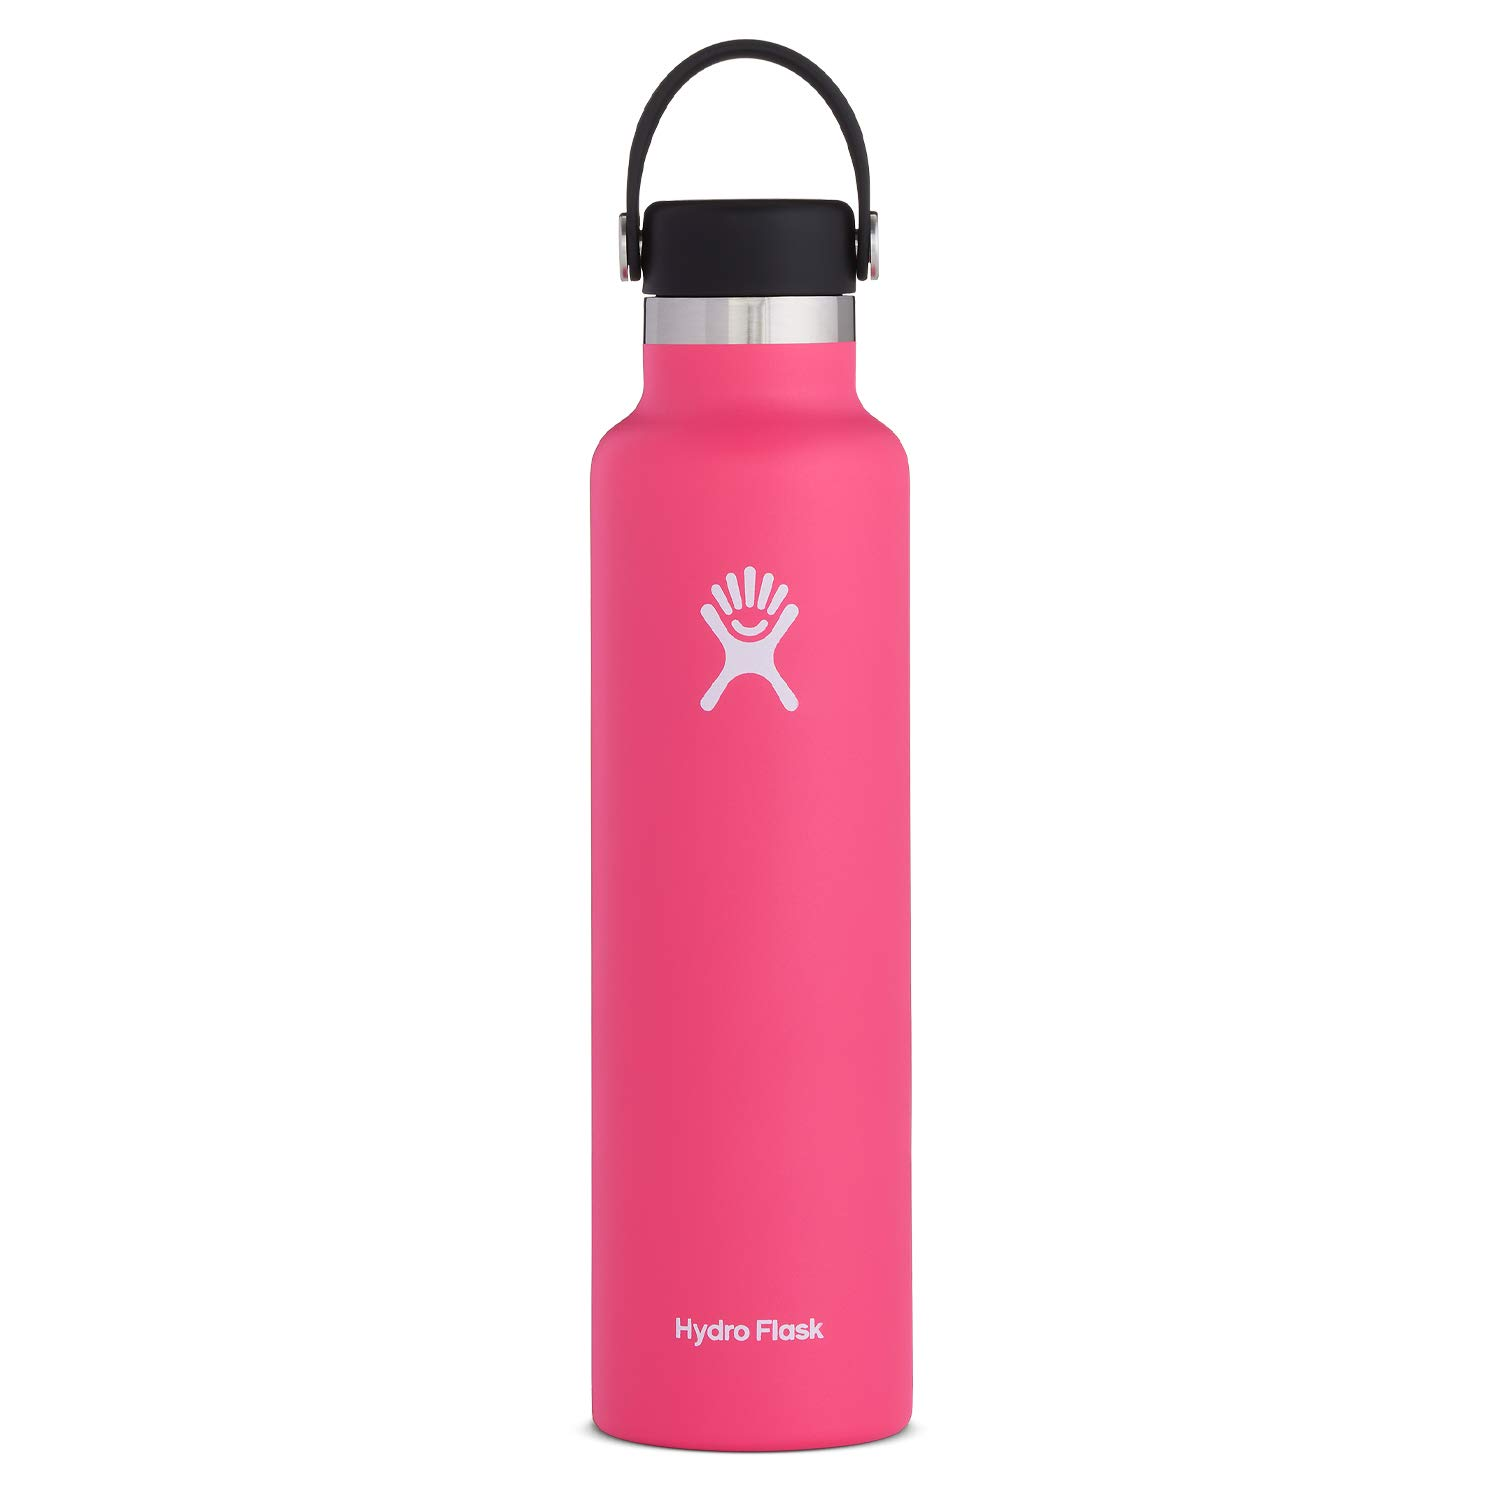 Hydro Flask Water Bottle   Stainless Steel & Vacuum Insulated   Standard Mouth with Leak Proof Flex Cap  Multiple Sizes & Colors